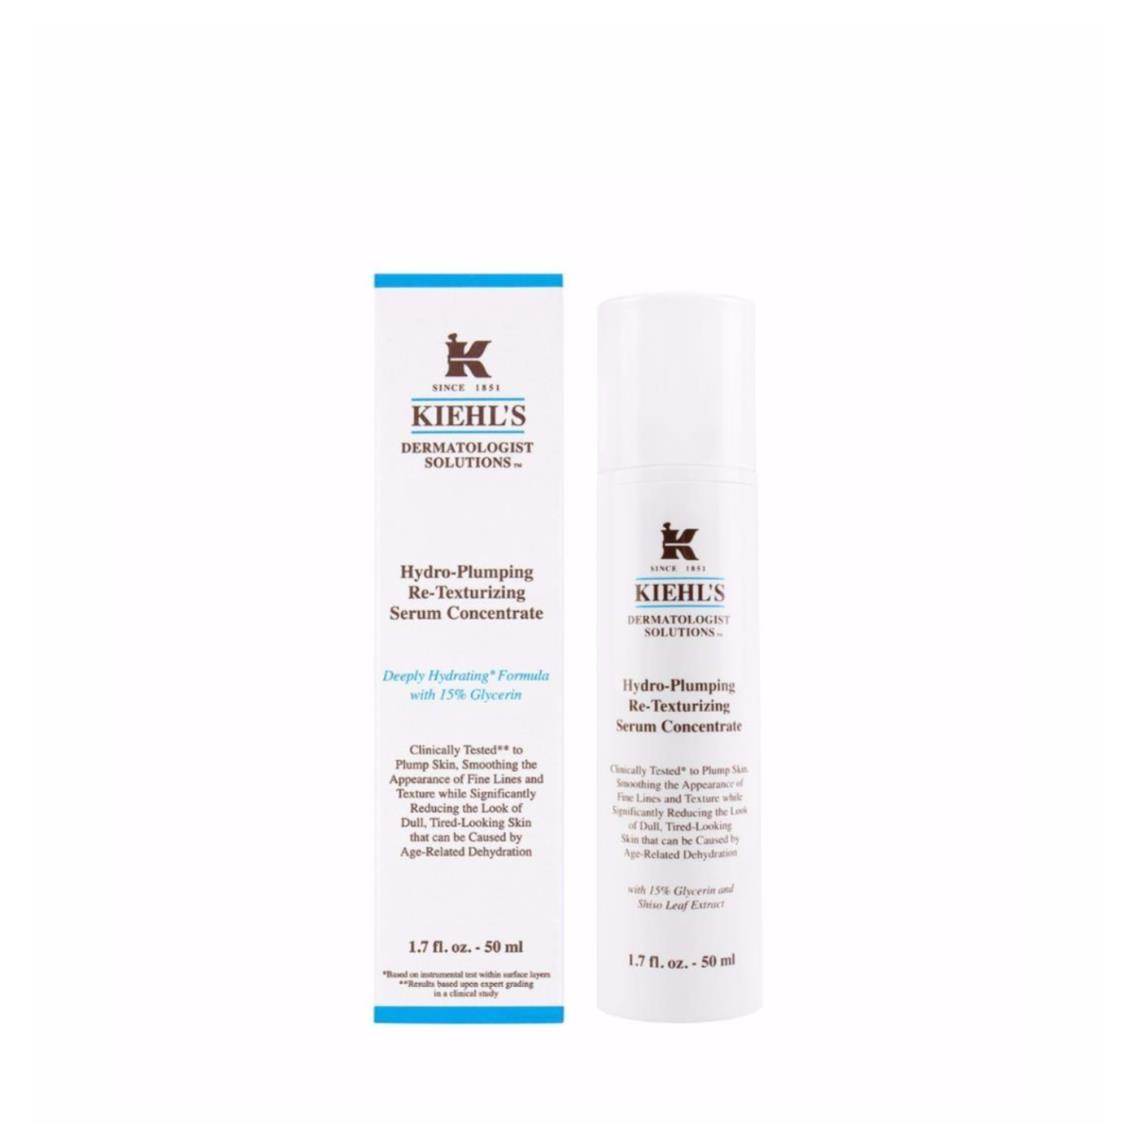 Dermatologist Solutions Hydro-Plumping Re-Texturizing Serum Concentrate 50ml